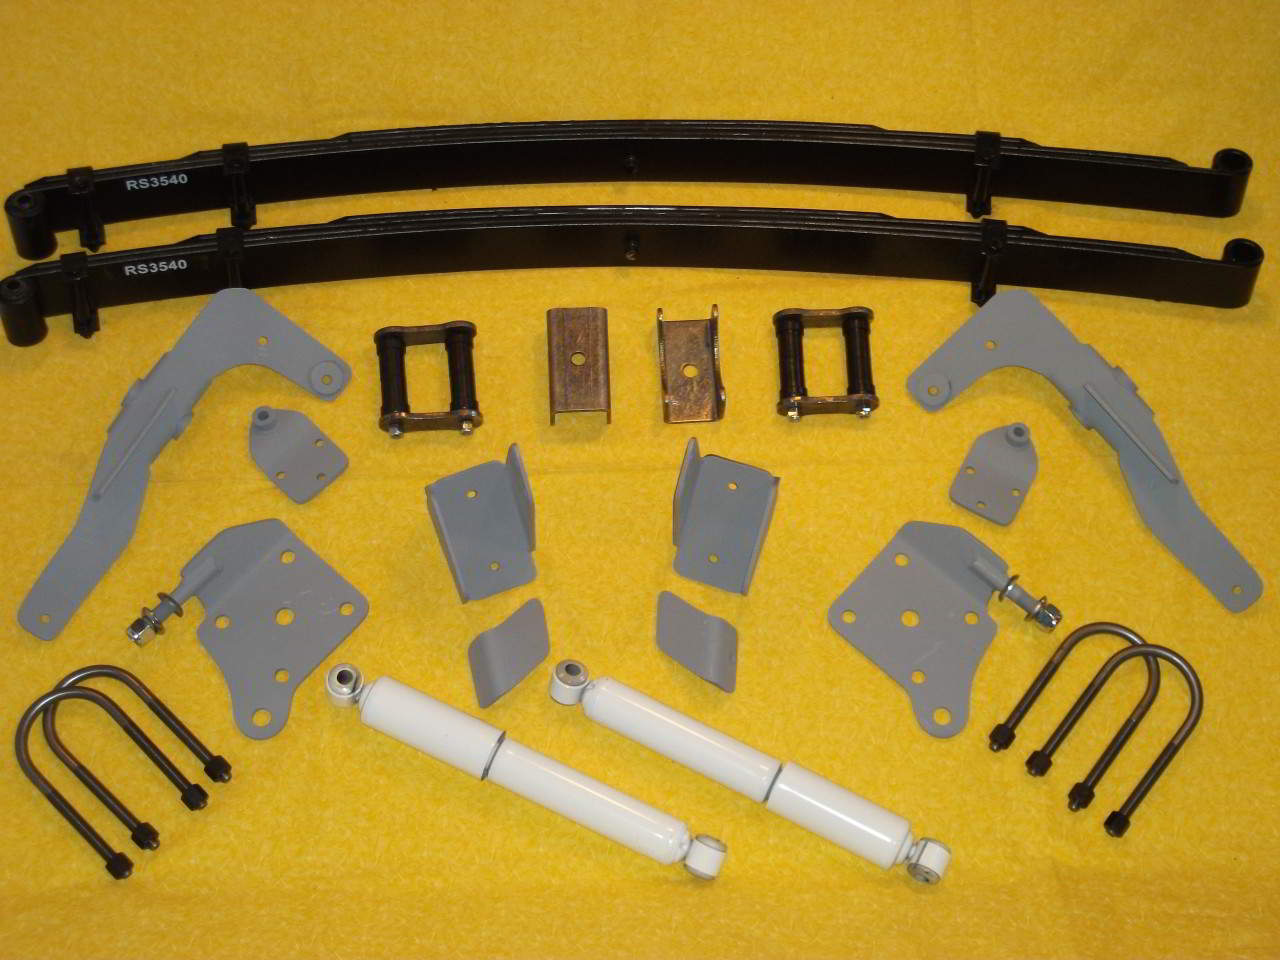 Chassis Engineering Blog Archive As 2016cg Complete Leaf Spring 1941 Ford 3 4 Ton Pickup Truck Rear End Mounting Kit For Late 1936 1940